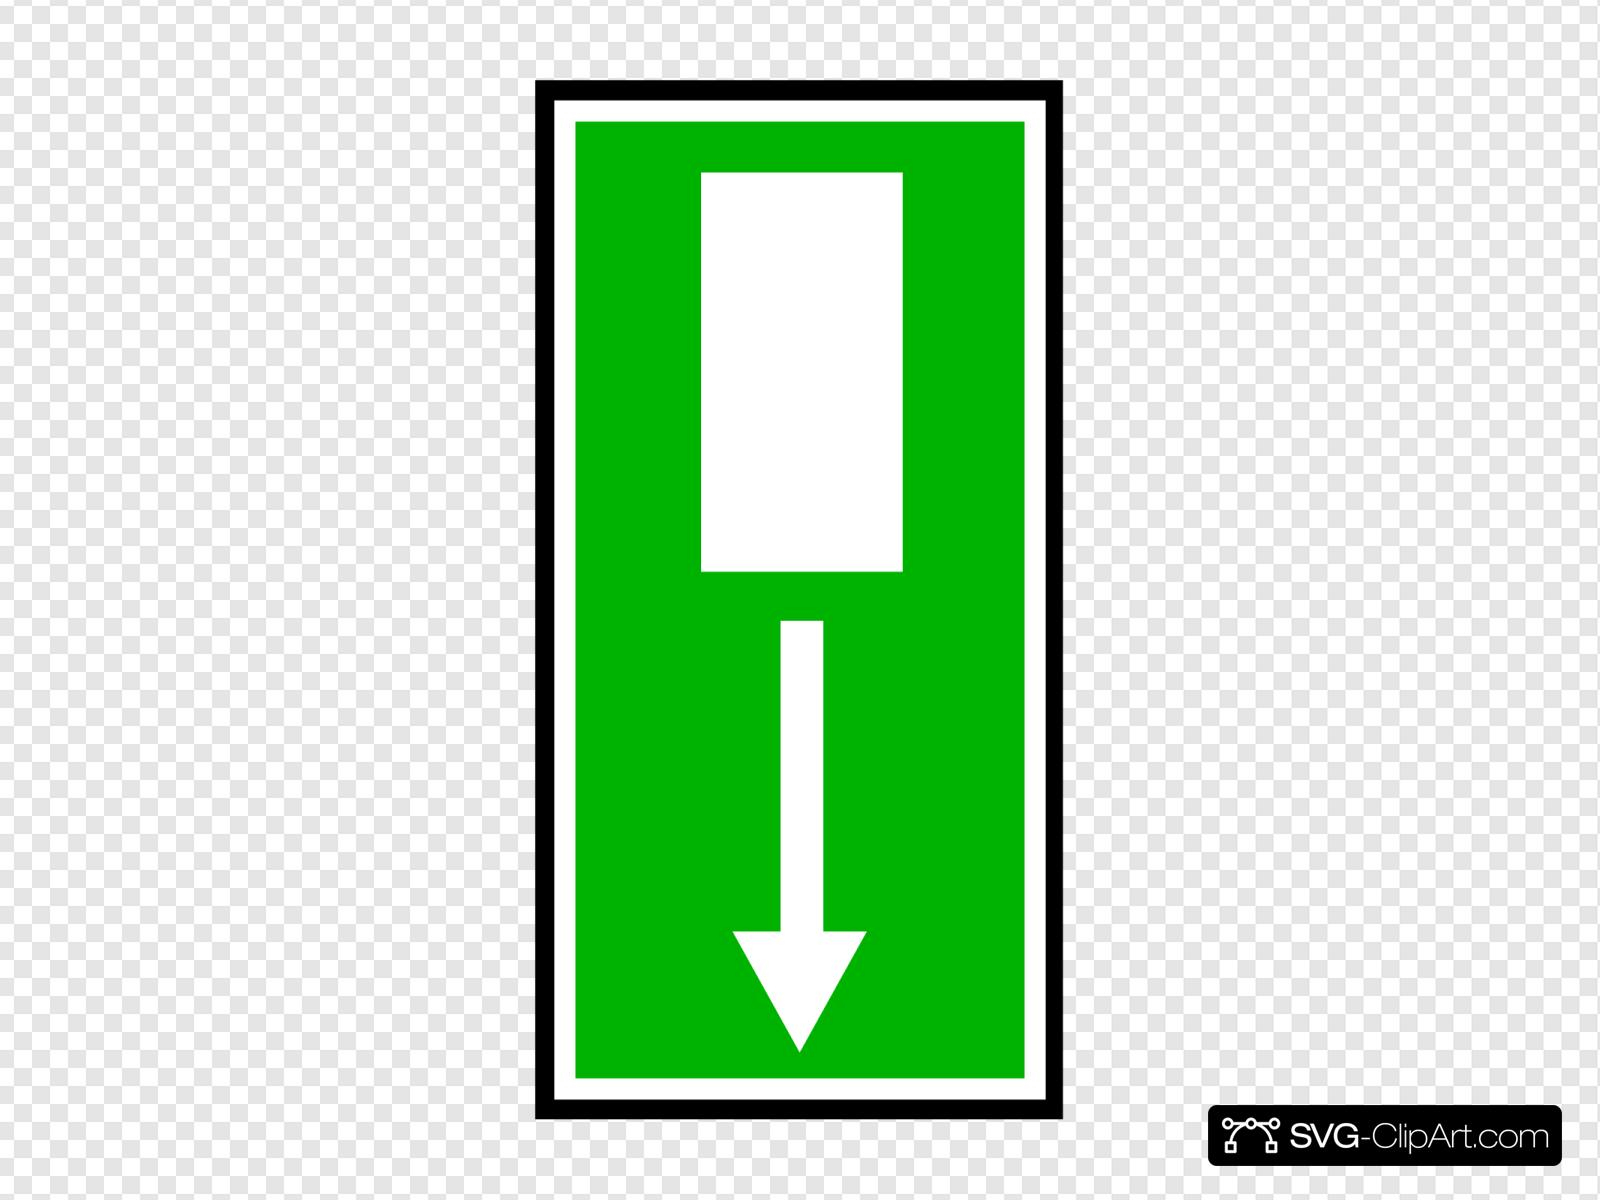 Exit Sign Stock Vector Illustration And Royalty Free Exit Sign Clipart